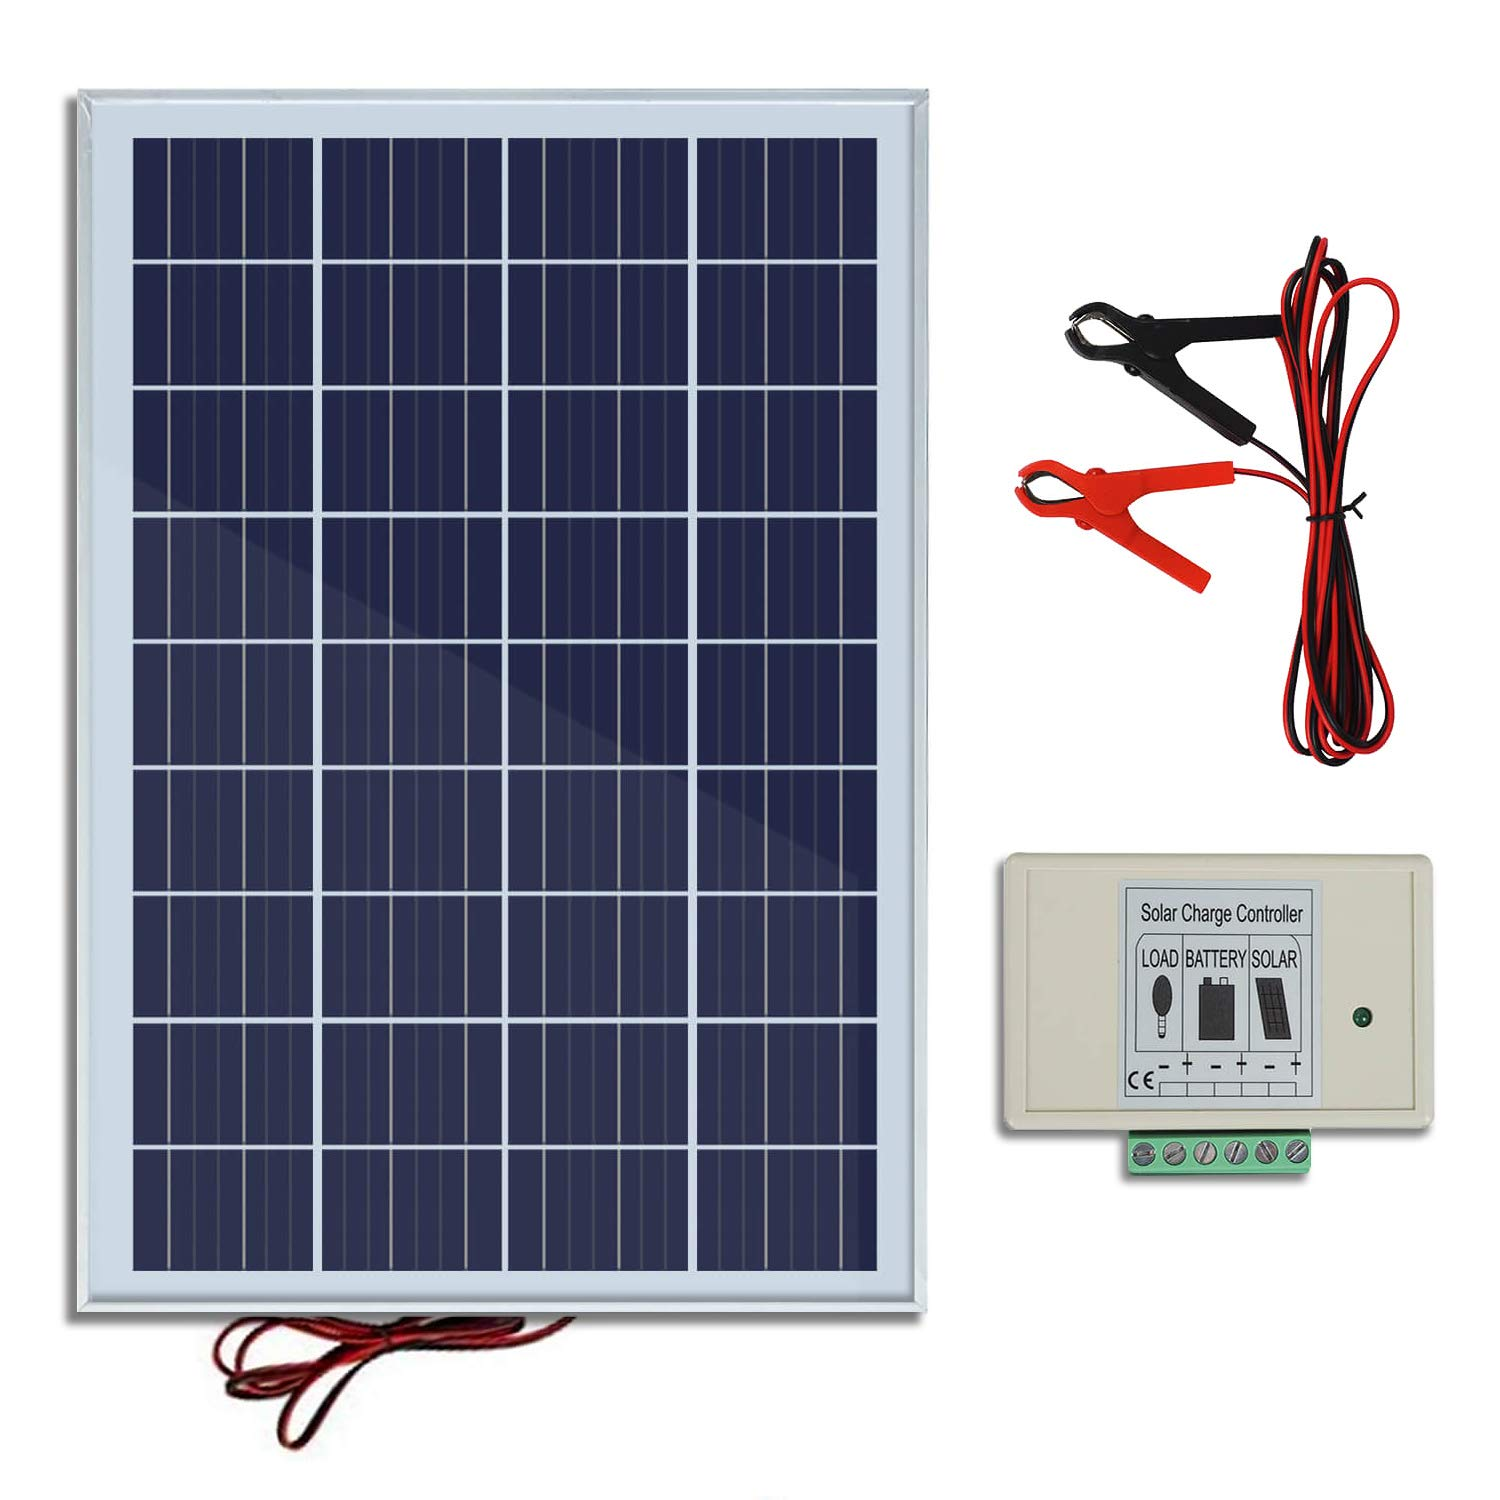 Top 10 Best Chinese Solar Panels Reviews in 2021 9